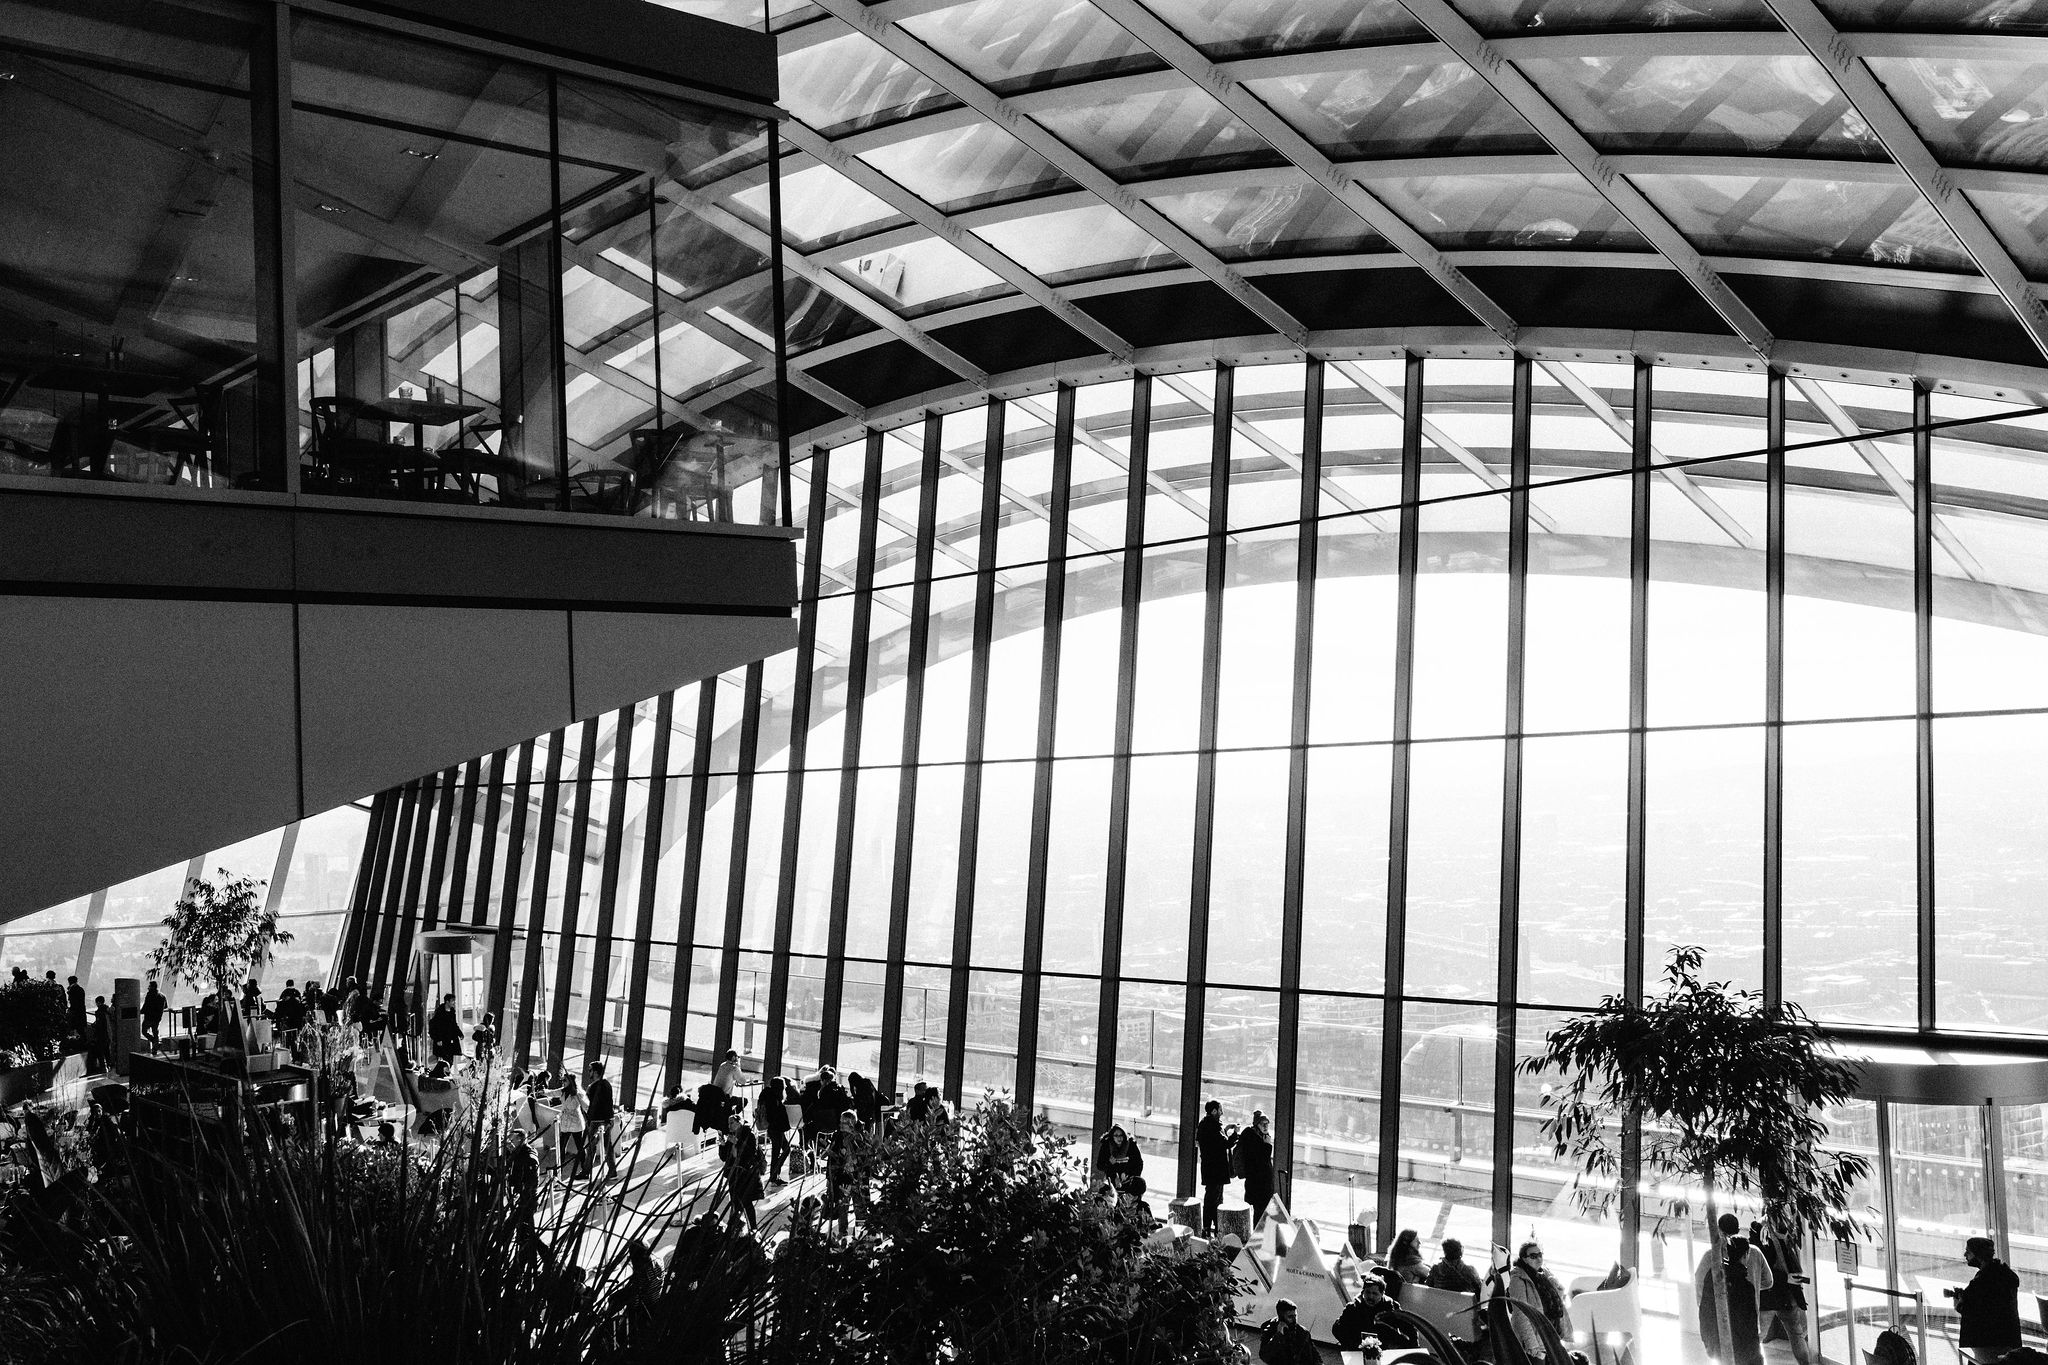 Glass dome of Skygarden, London